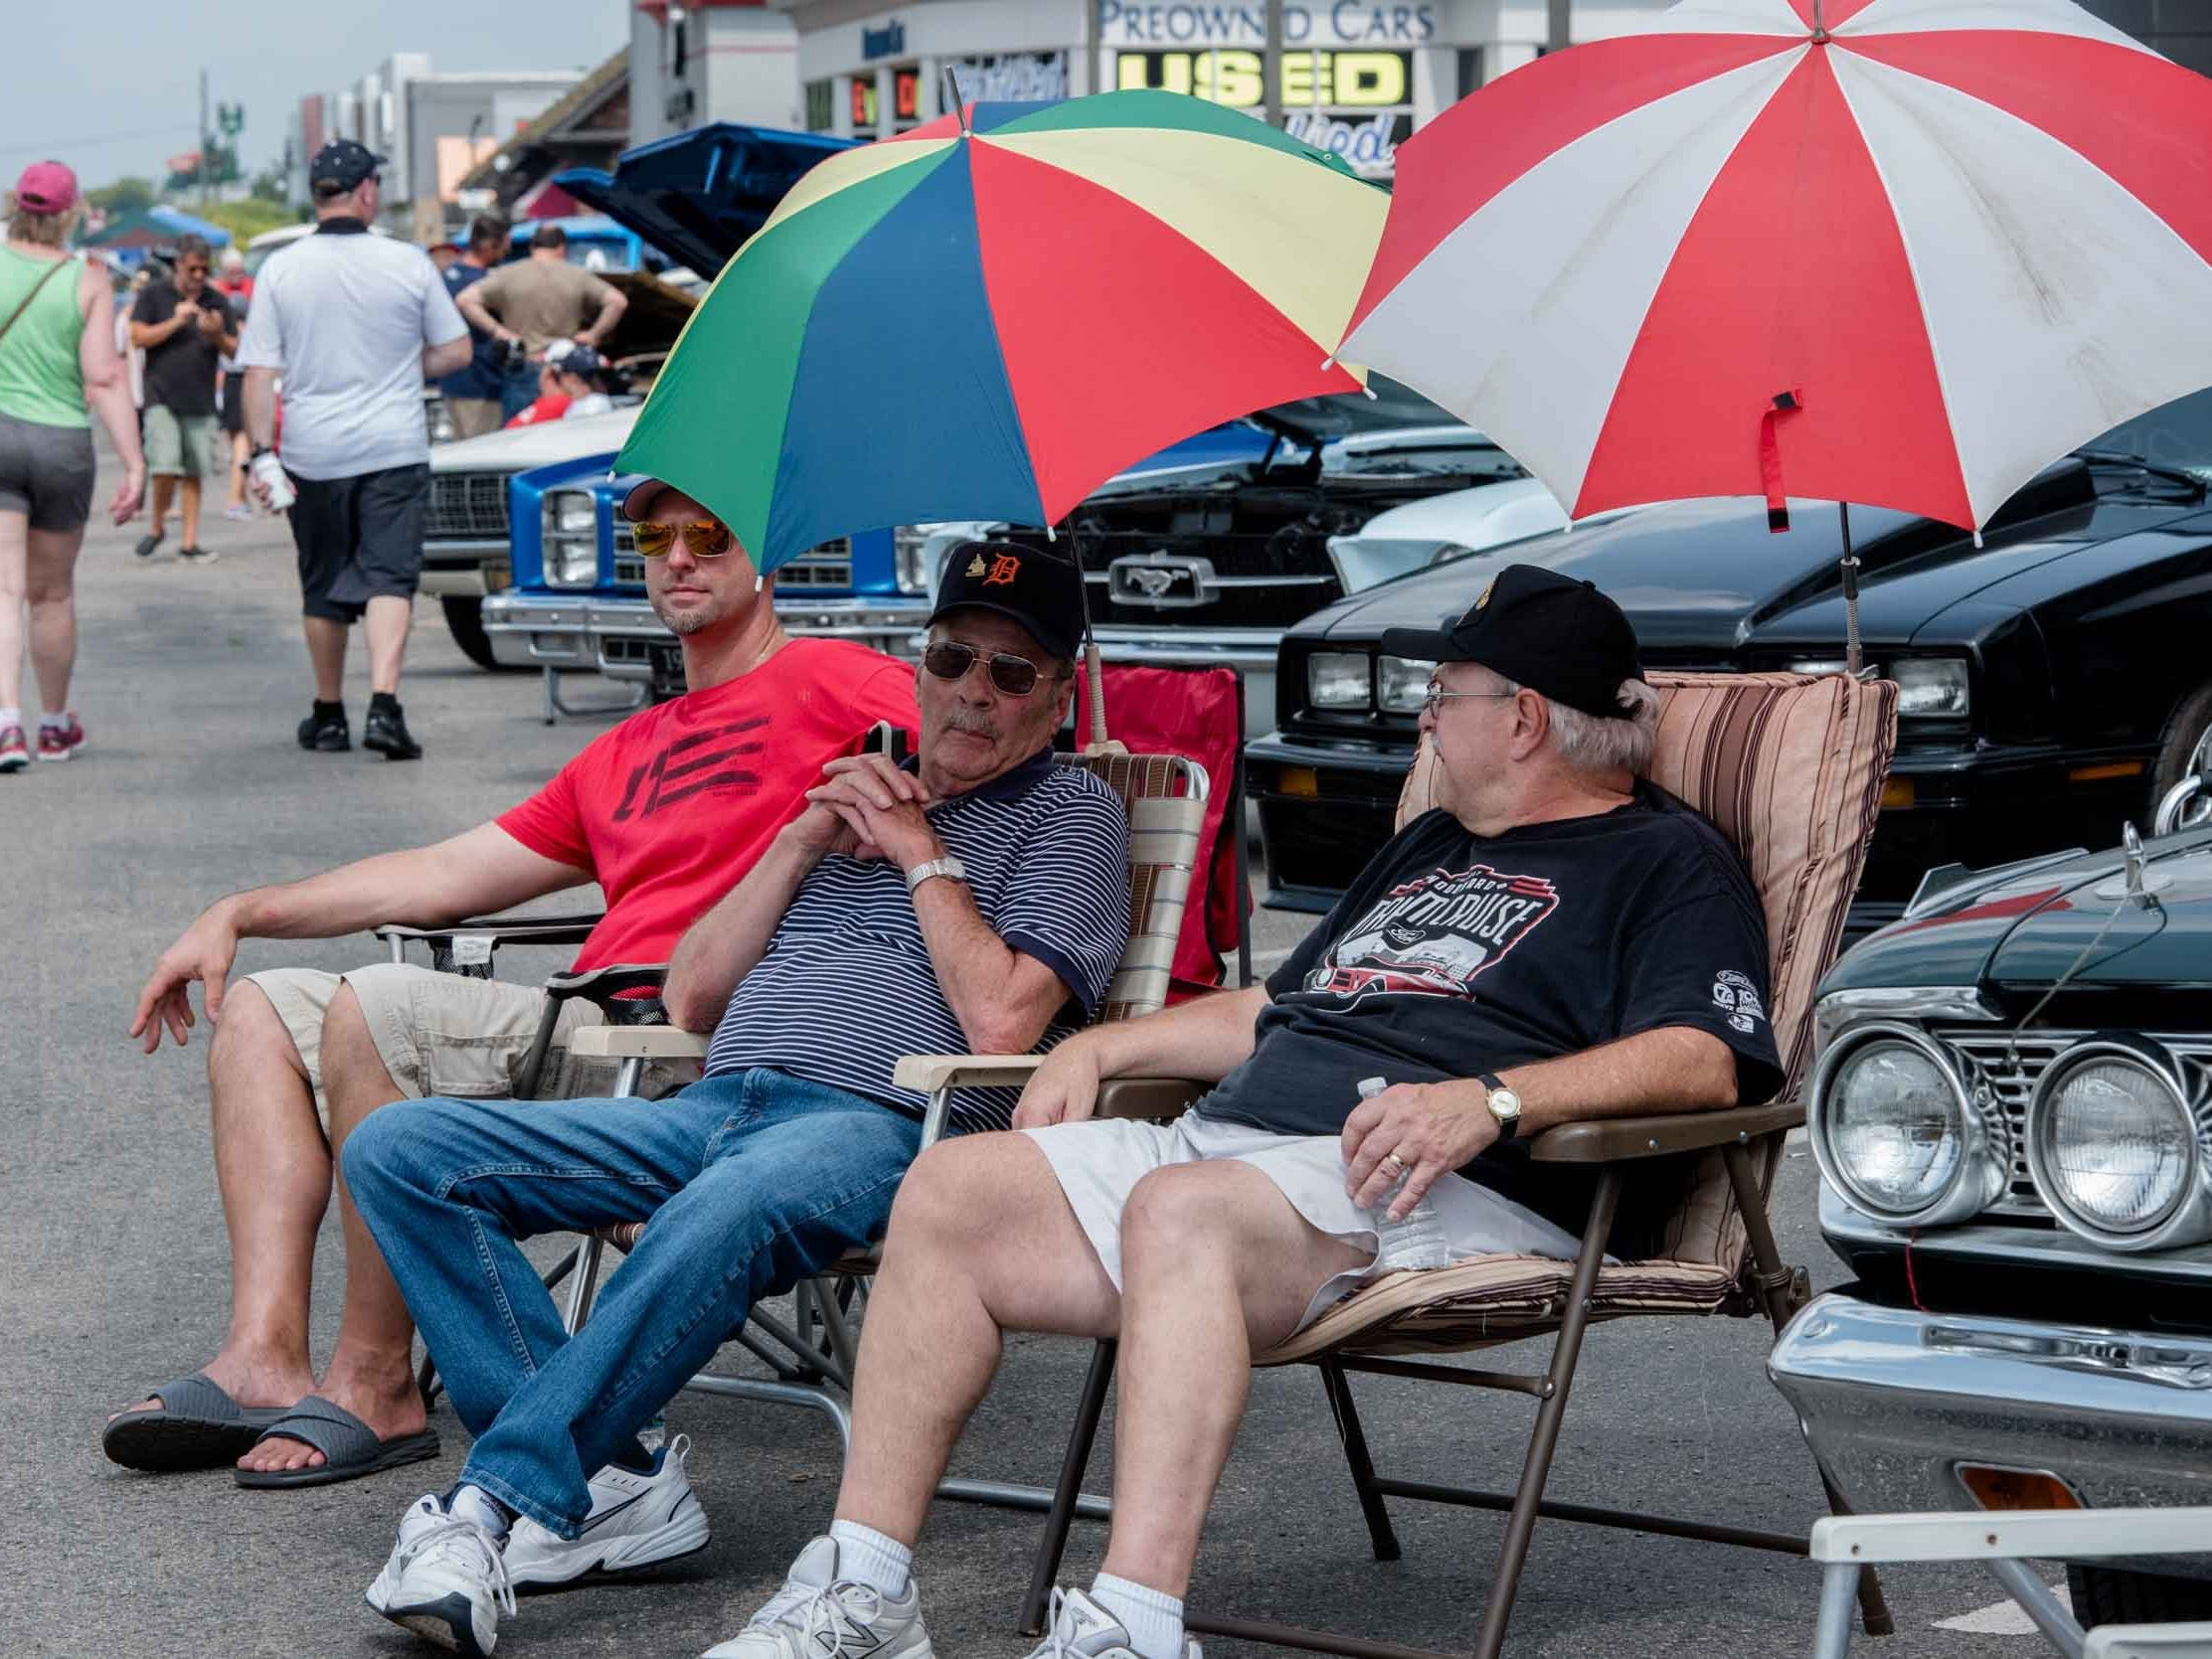 Tens of thousands of classic car enthusiasts lined the edges of Woodward Avenue during Dream Cruise 2018, Aug. 18. 2018.